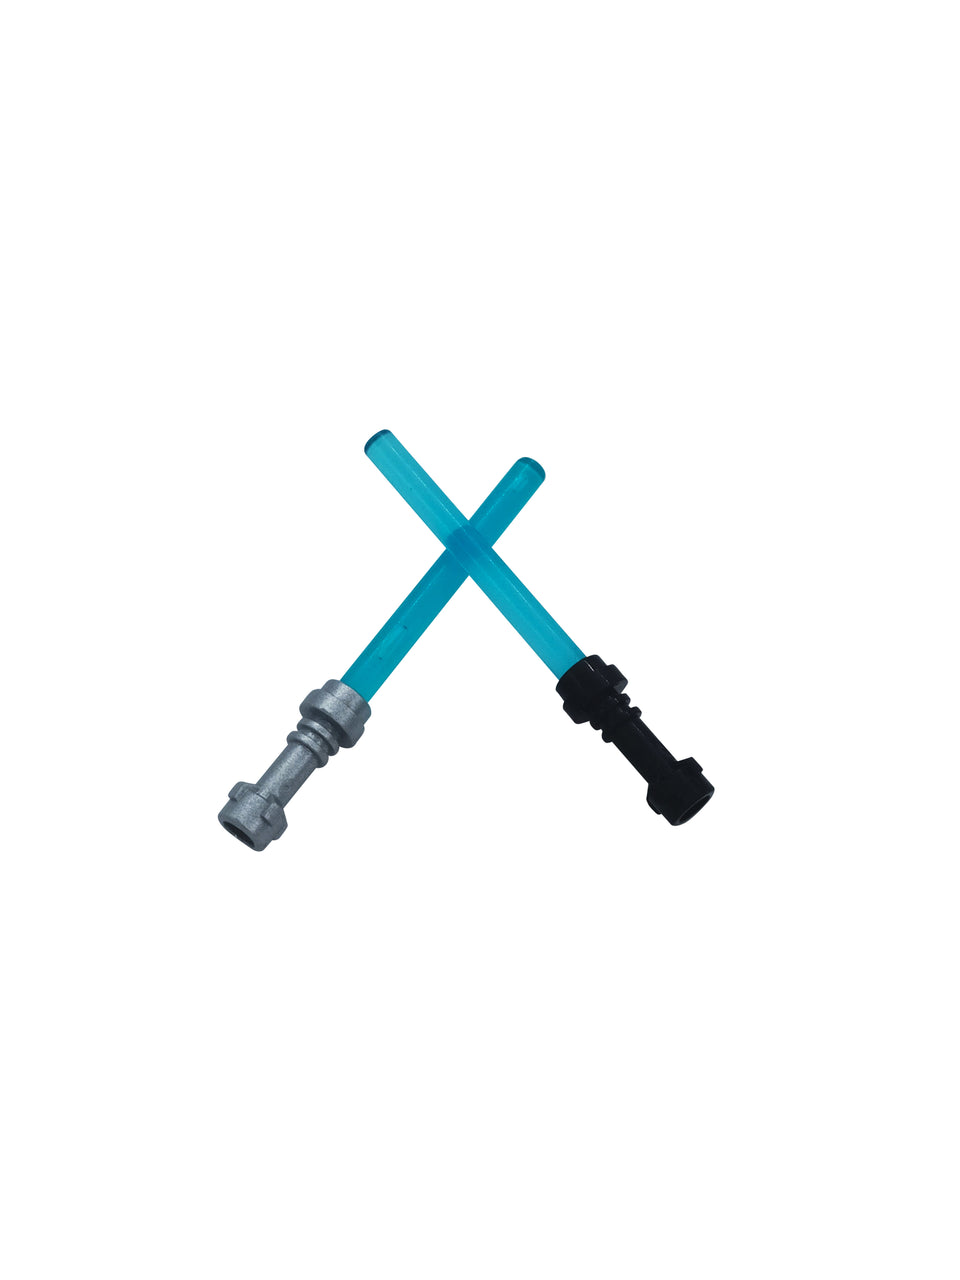 pair of Light Swords - Star Wars Lego